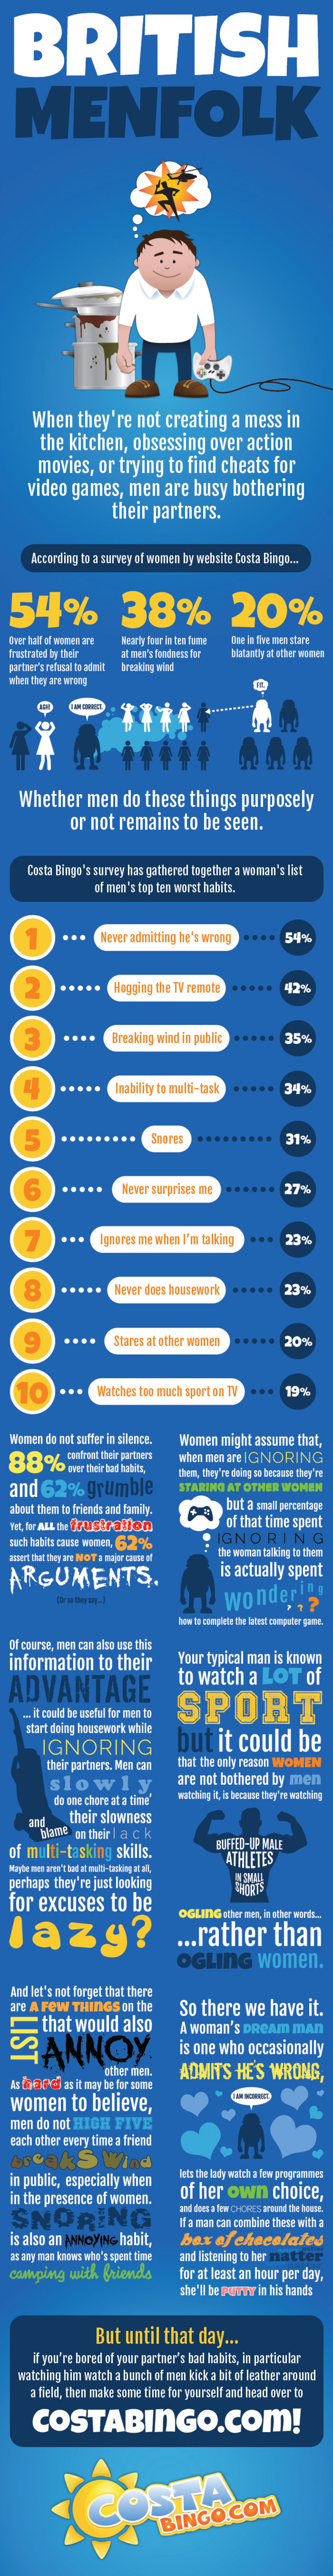 How do you feel about your partner's annoying habits? Infographic